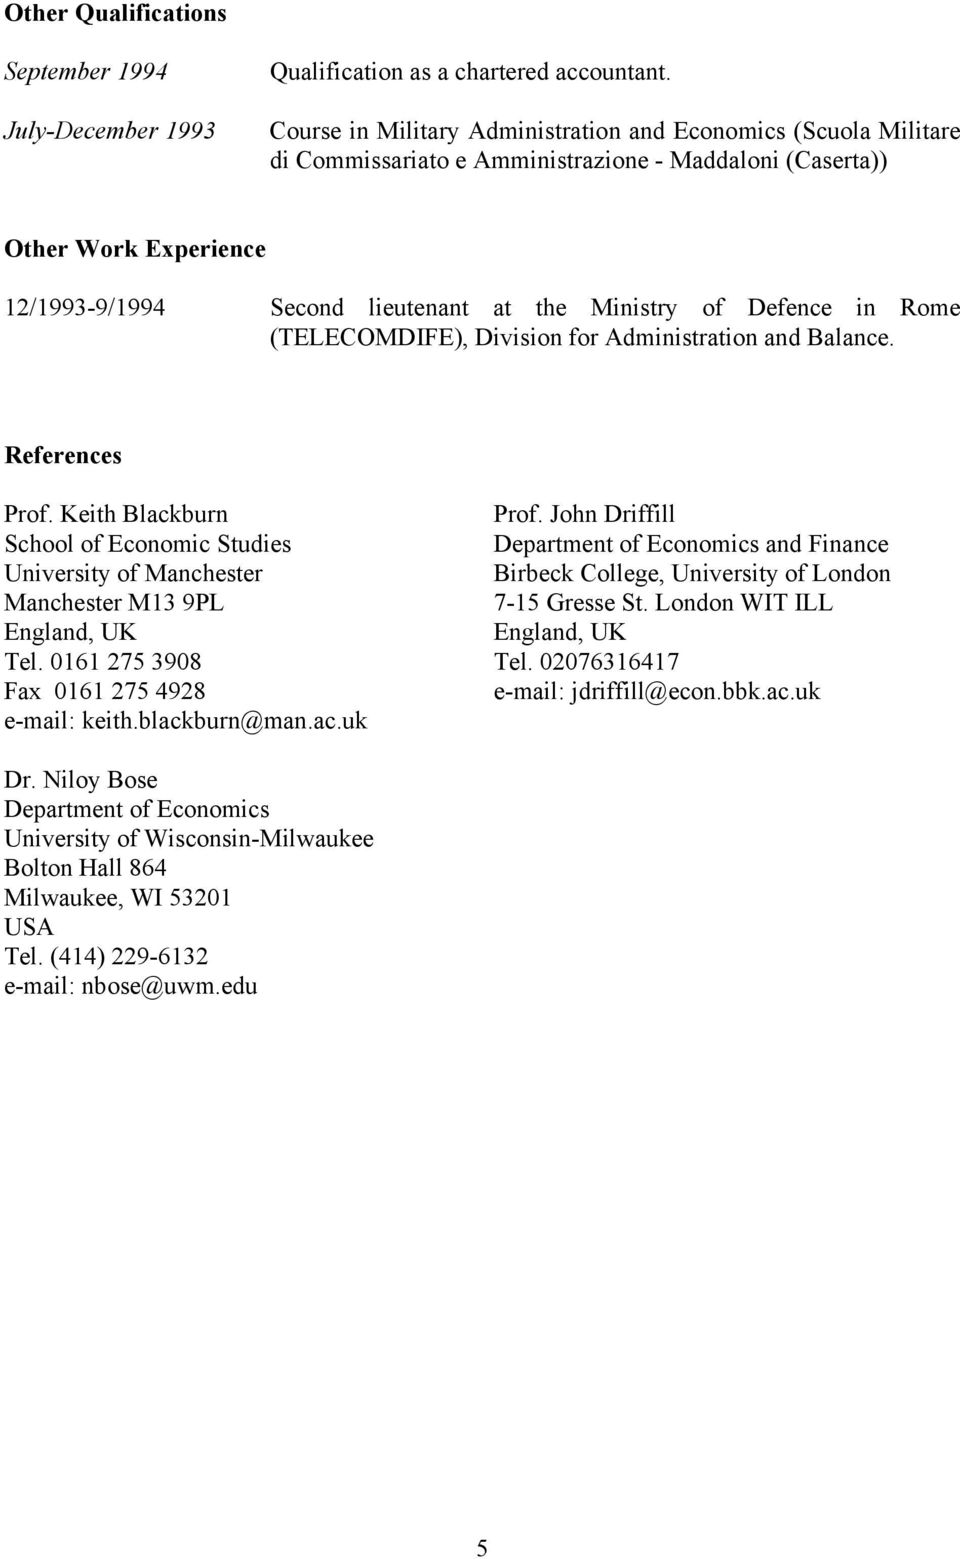 Defence in Rome (TELECOMDIFE), Division for Administration and Balance. References Prof. Keith Blackburn School of Economic Studies University of Manchester Manchester M13 9PL England, UK Tel.